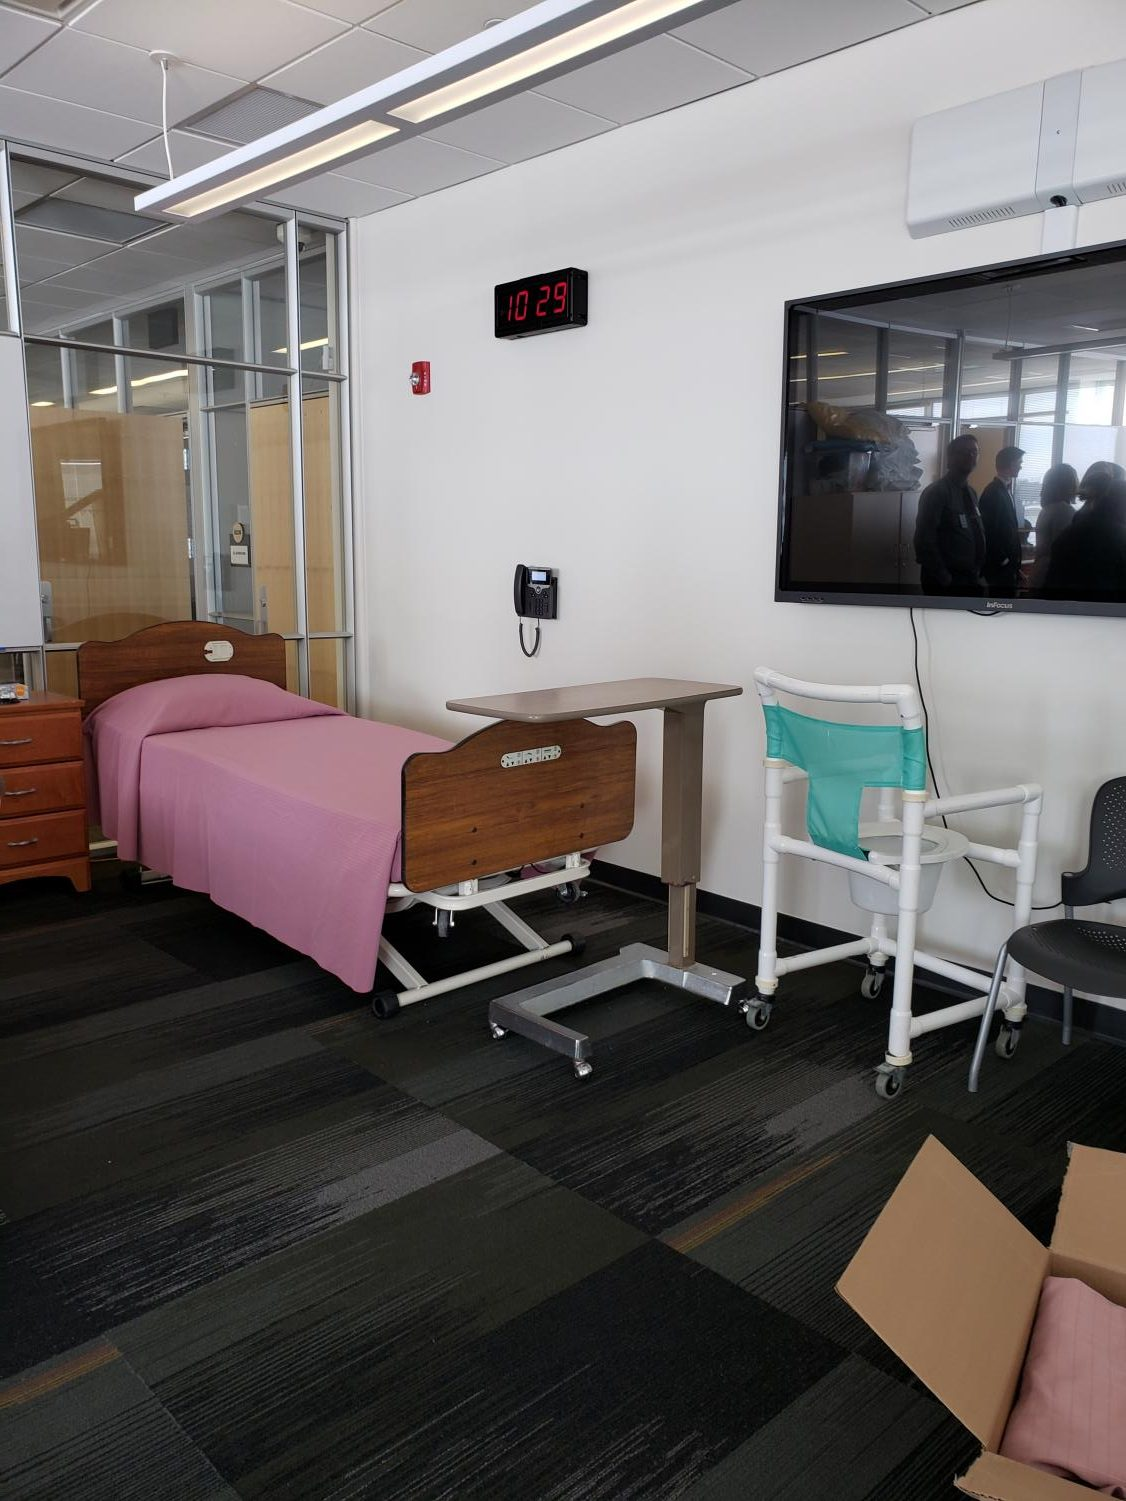 Alexandrea  High School has a health care learning lab similar to what Mayo is proposing